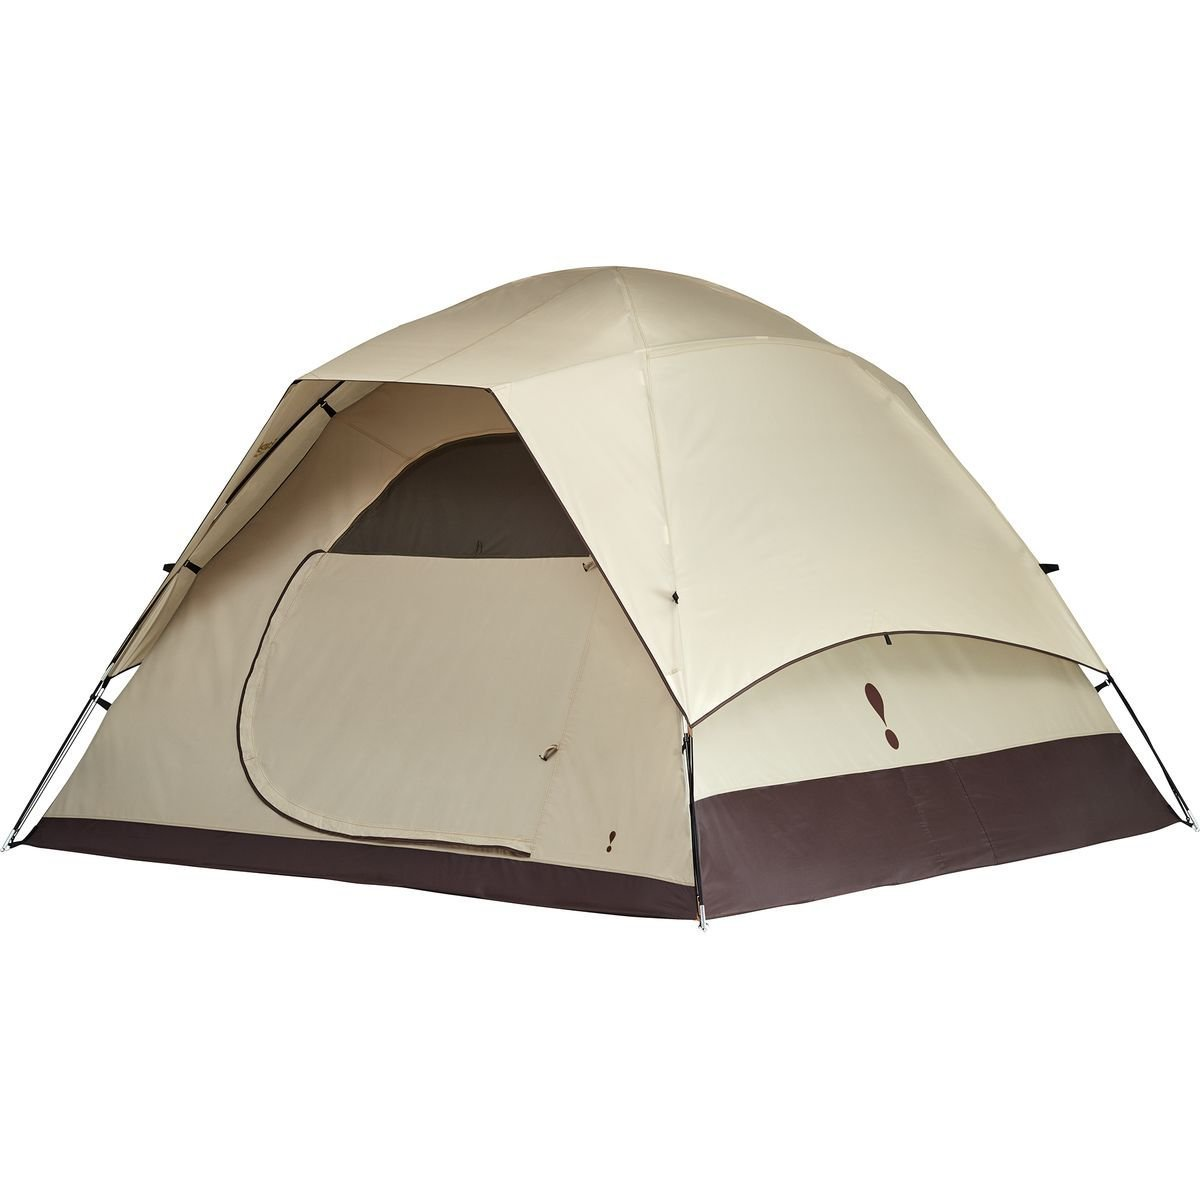 Eureka Sunrise EX 4 Person Tent